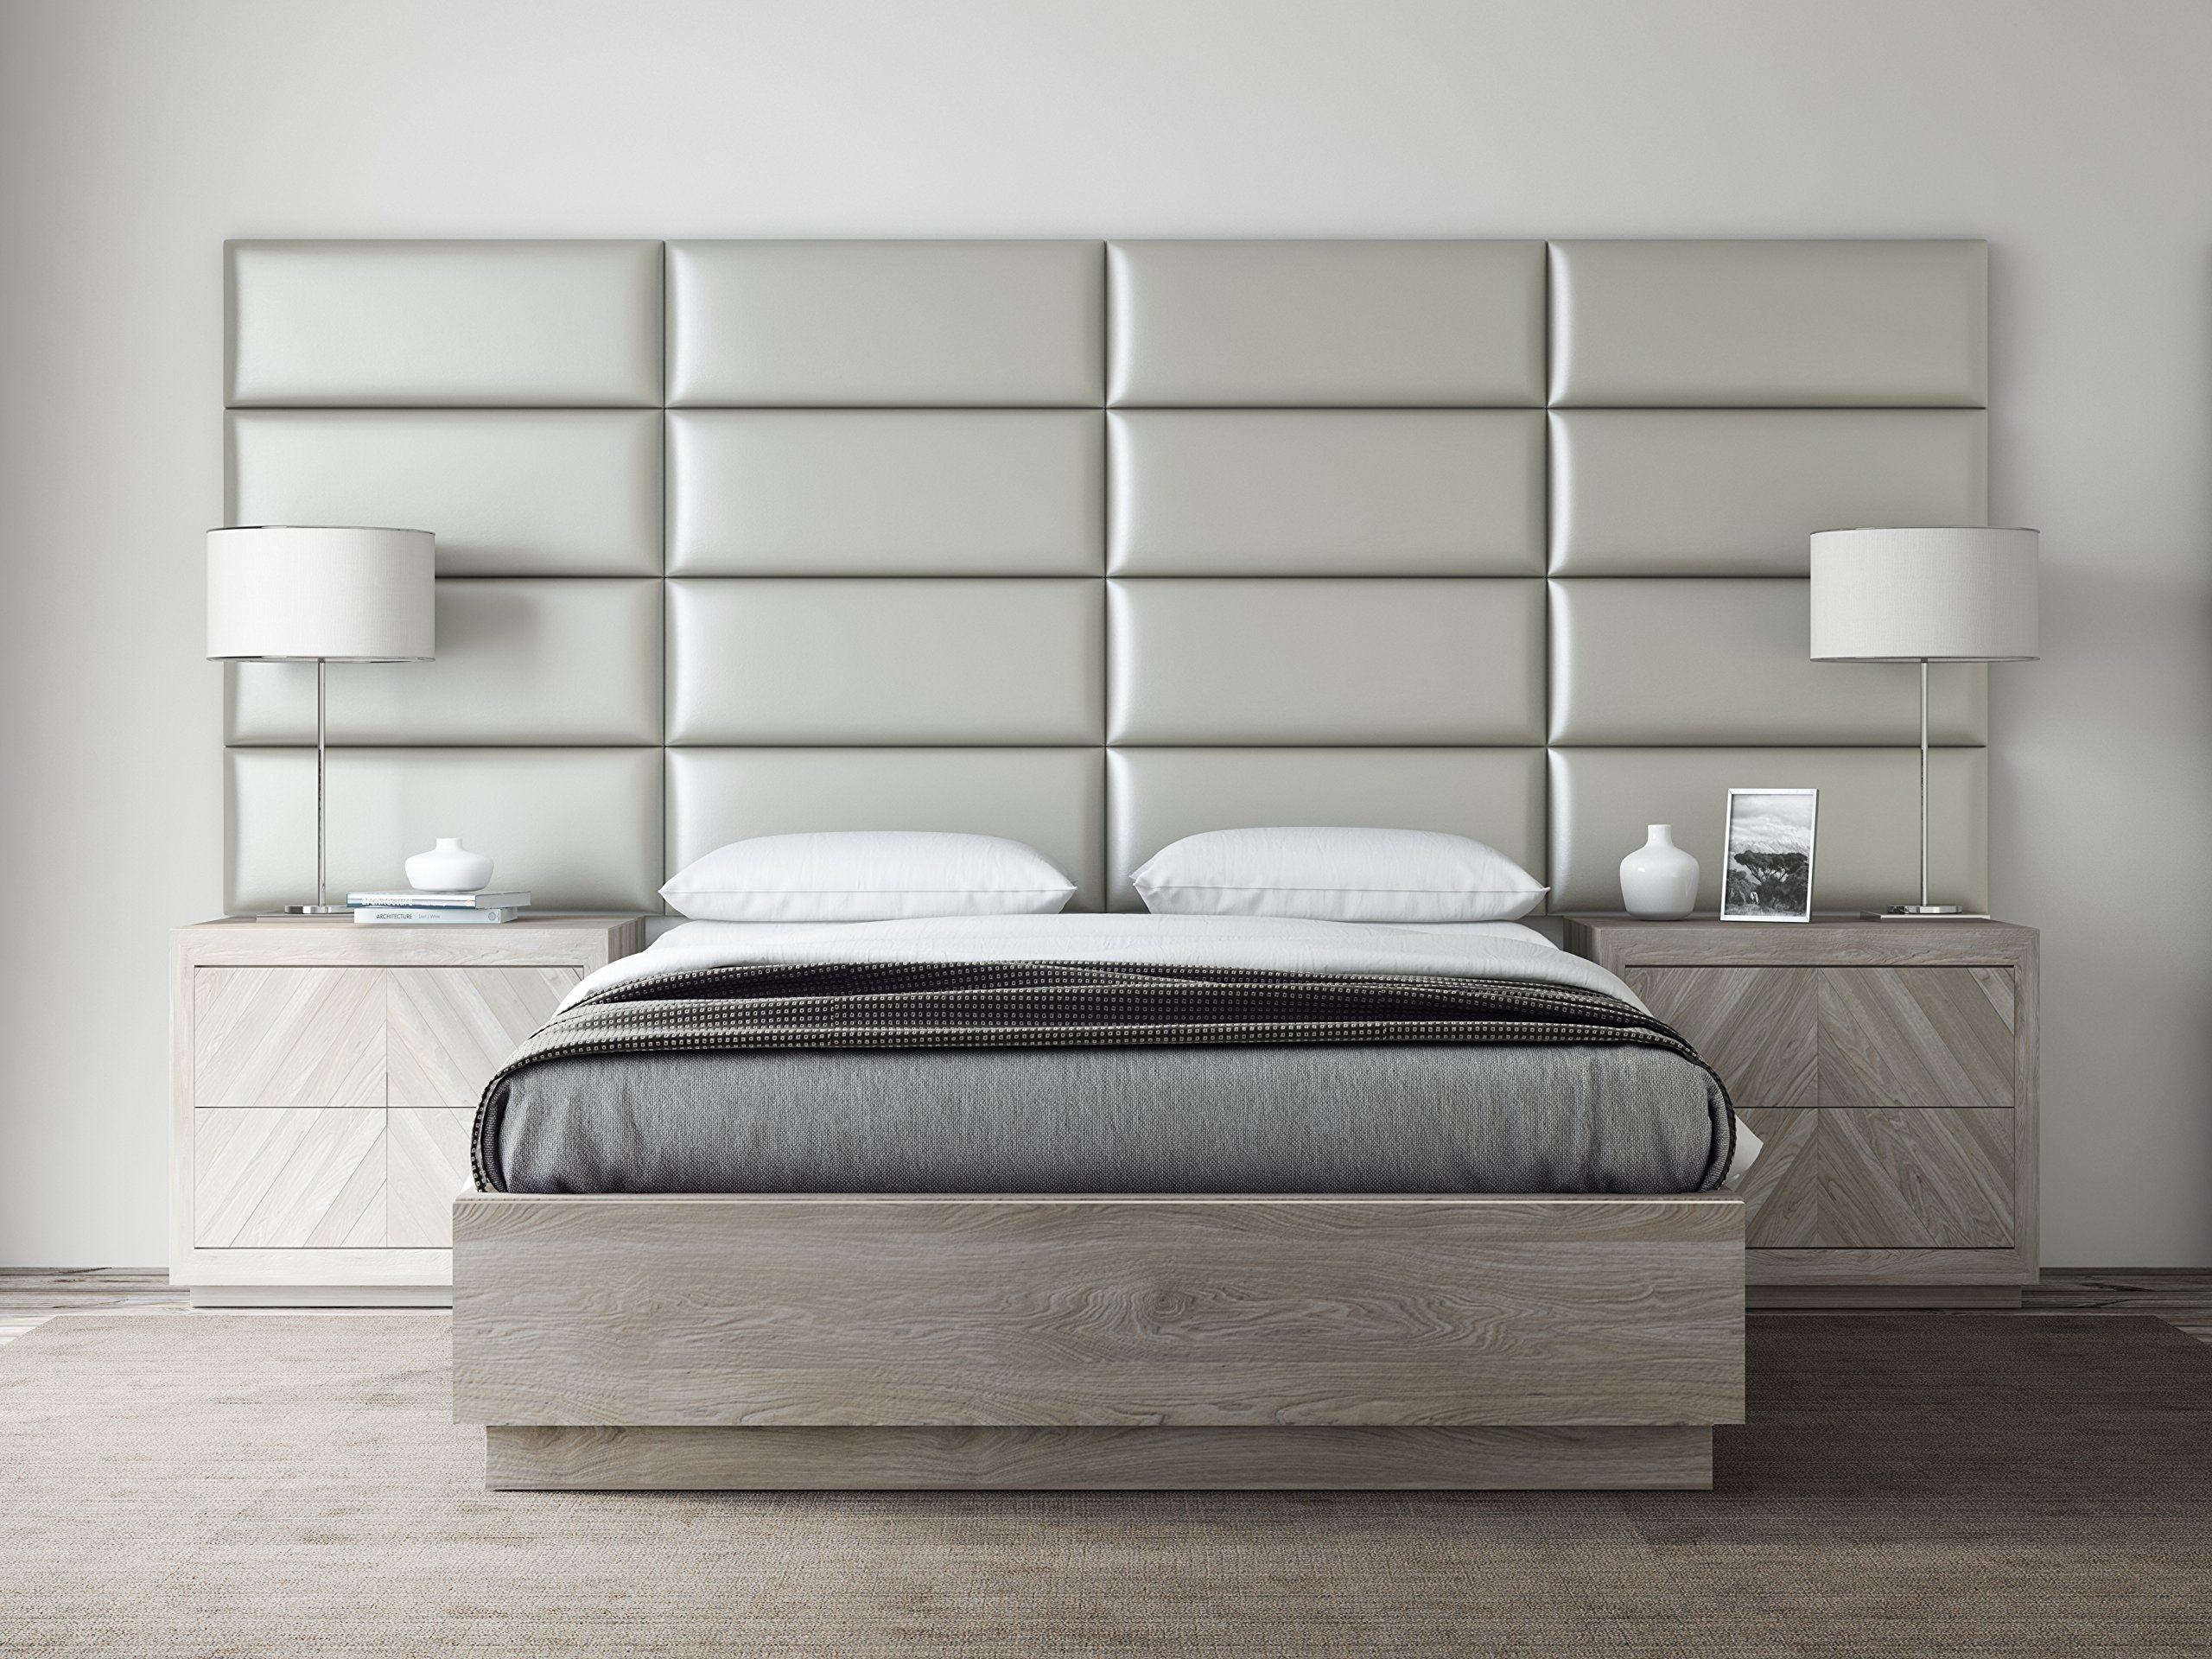 VANT Upholstered Headboards - Accent Wall Panels - Packs Of 4 - Metallic Neutral - 30'' Wide x 11.5'' Height - Full - Queen Headboard